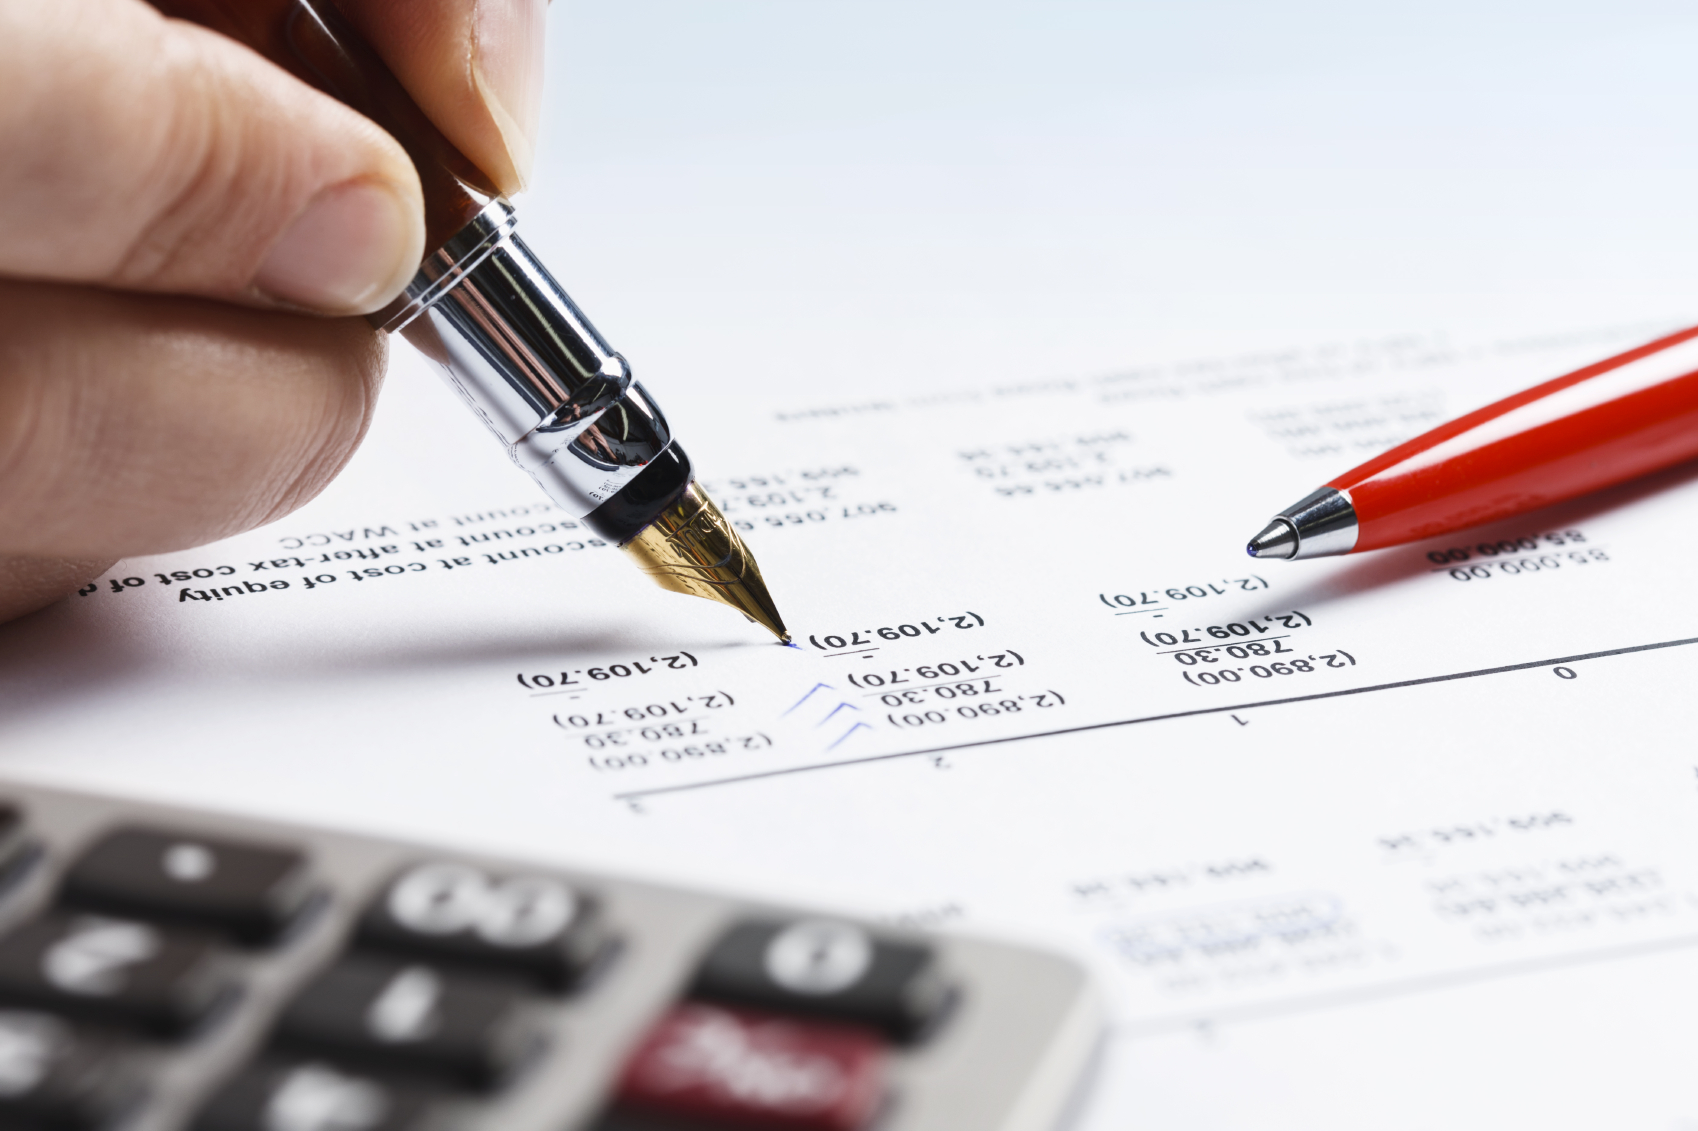 What independent business owners need to know about tax